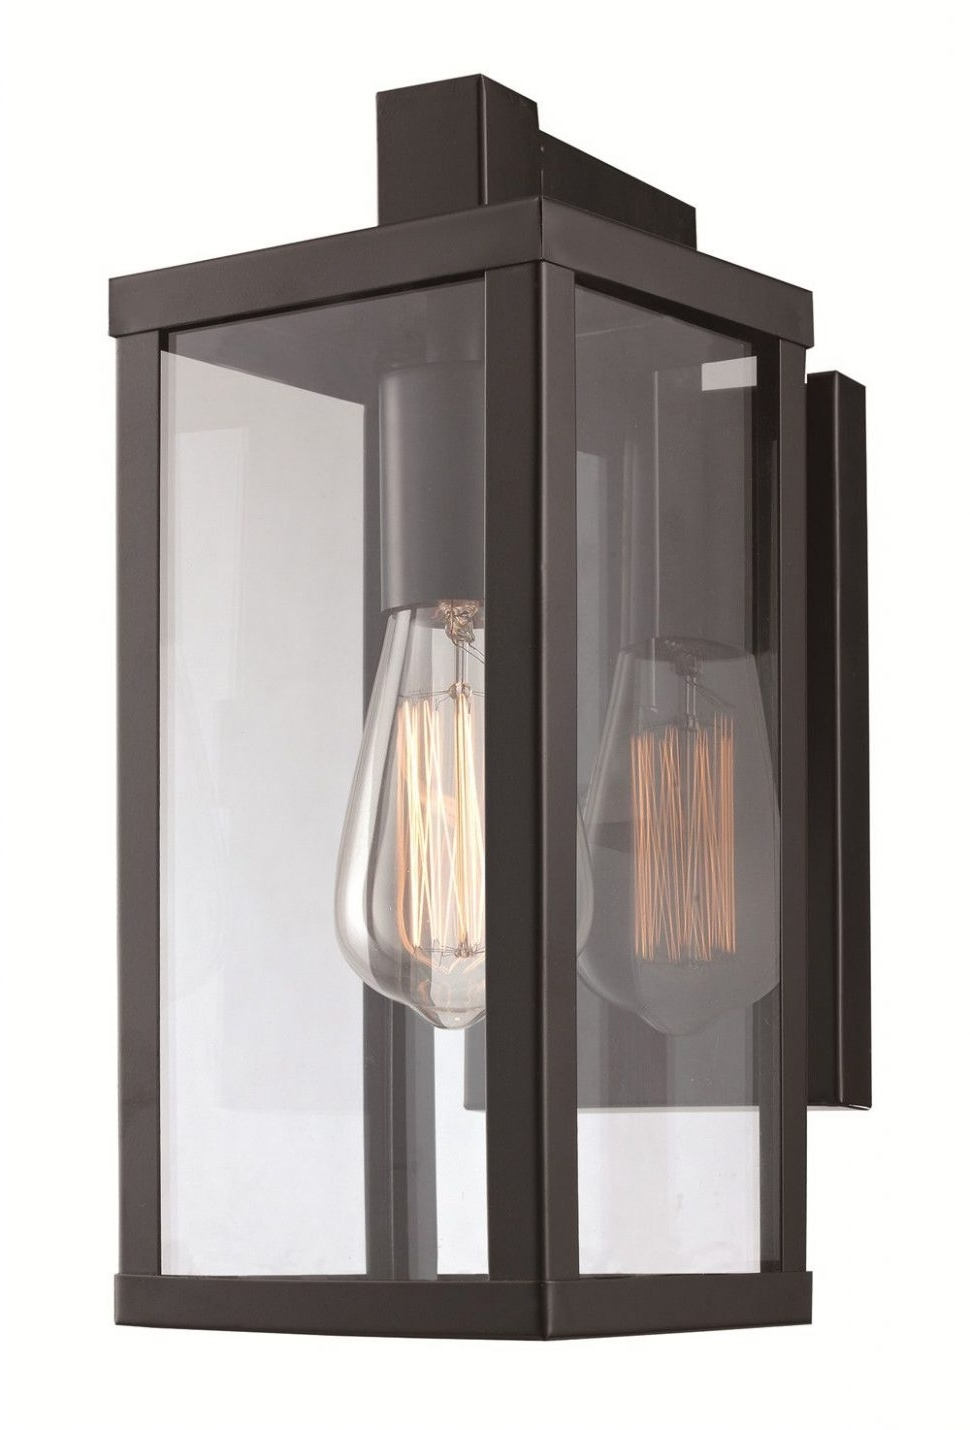 Contemporary Garden Lights Fixture At Home Depot For Fashionable Light : Exterior Lighting Ceiling Light Fixture Outdoor Led Carriage (View 2 of 20)